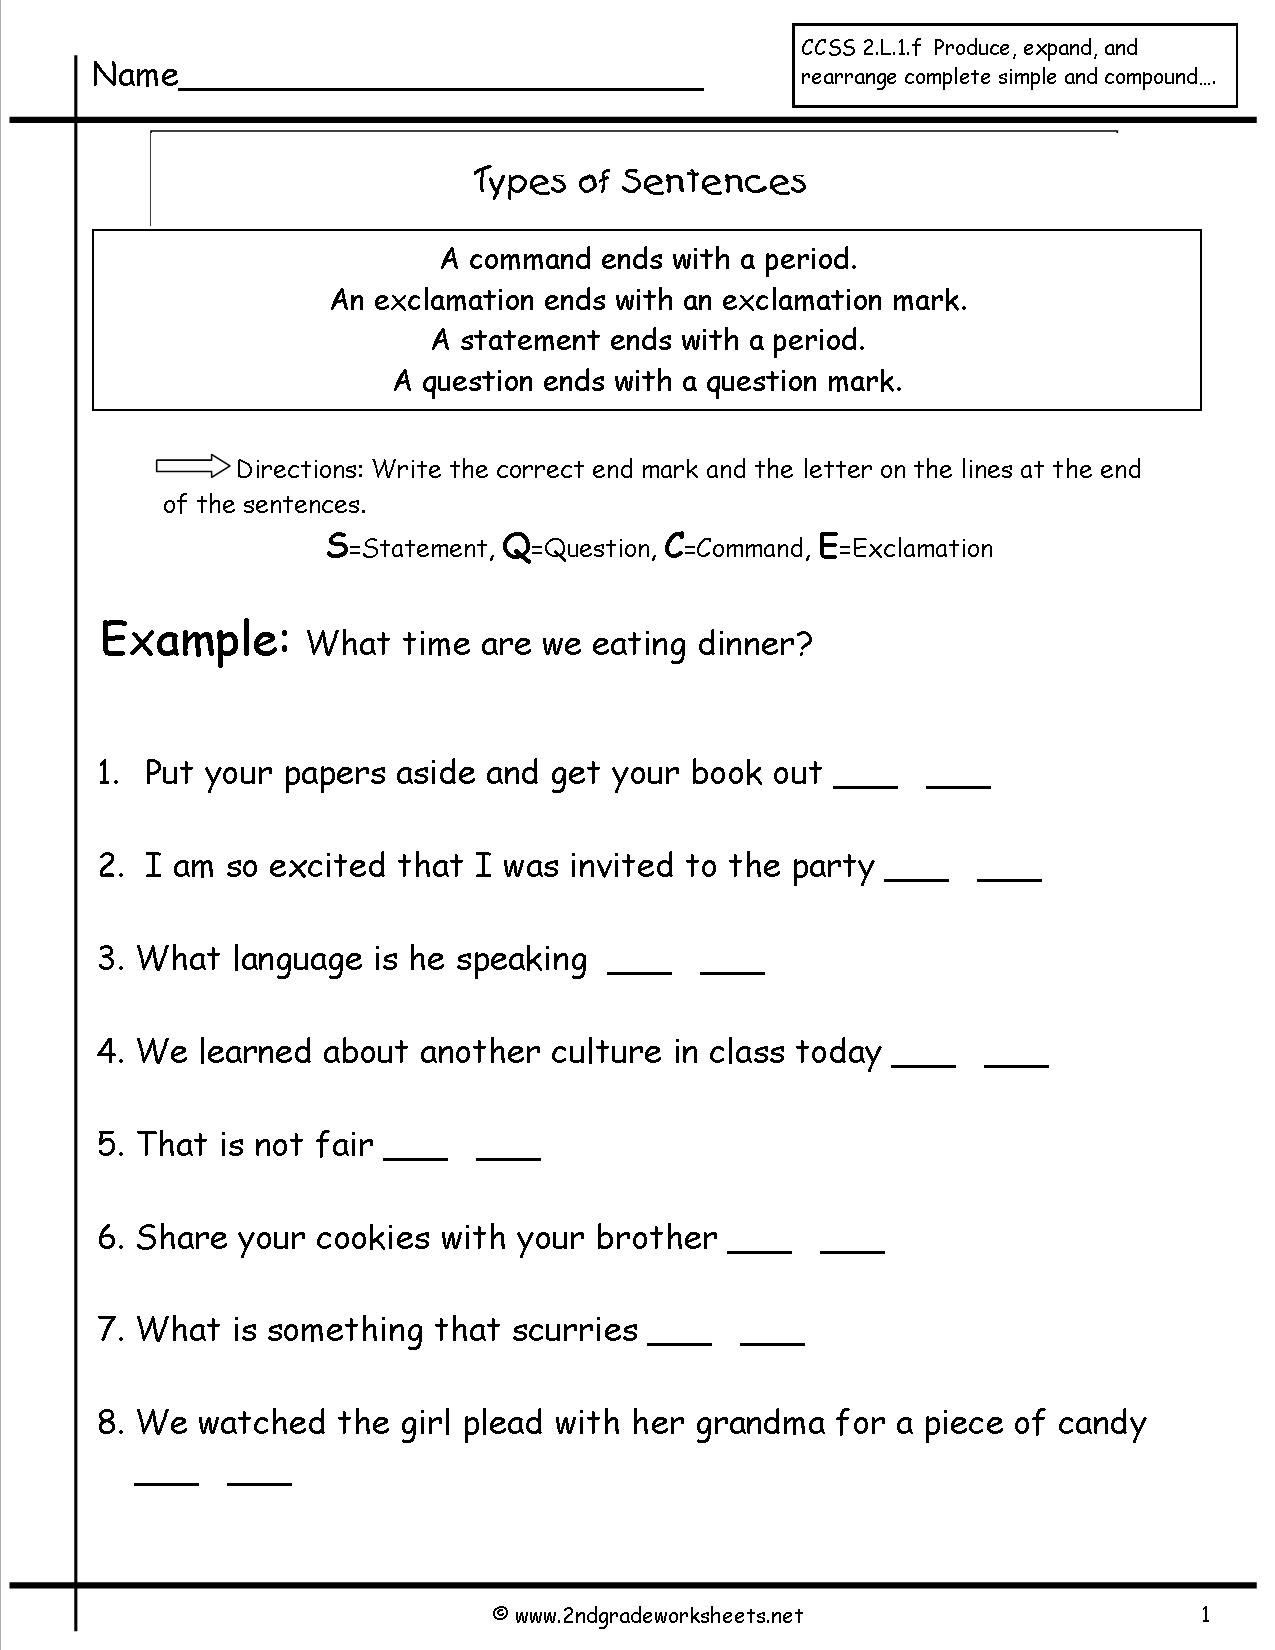 6th Grade Sentence Structure Worksheets First Grade Sentence Structure Worksheets